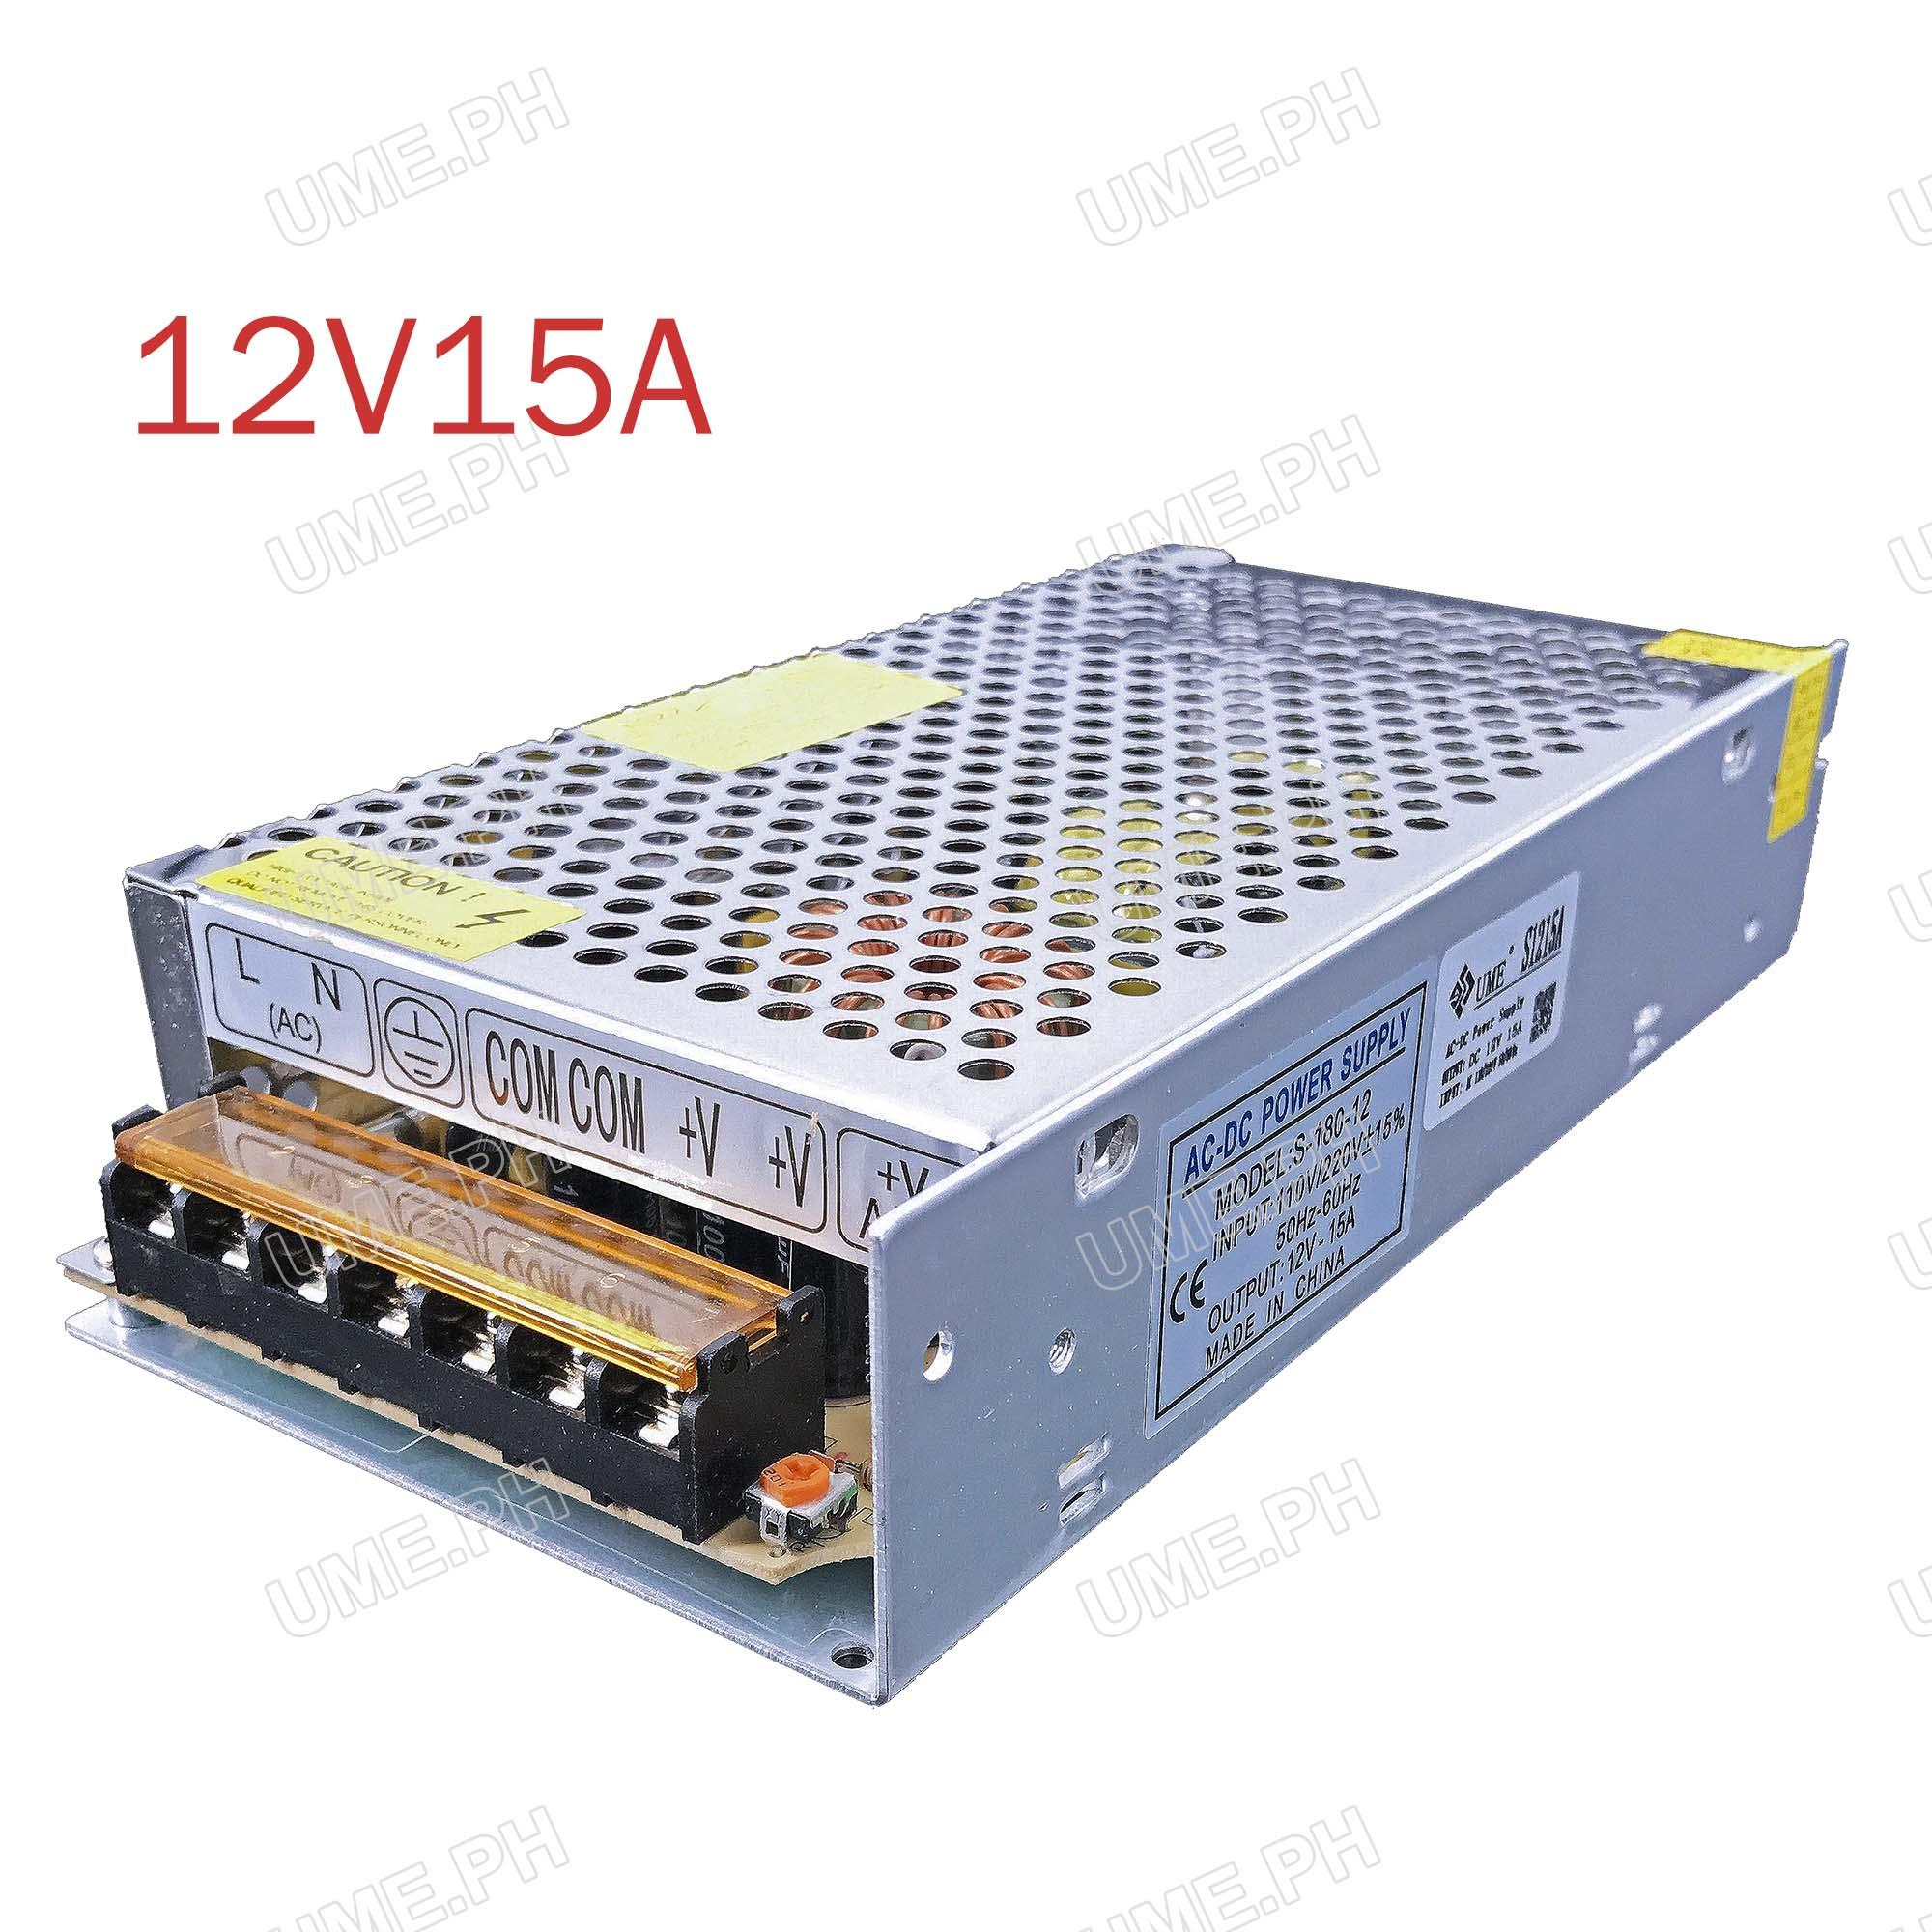 Pc Power Supply For Sale Computer Prices Brands Vs Series Vs550 550 Watt 80 Plus White Certified Psu Ume Cctv Centralize Adapter Dc 12v 15a S1215a